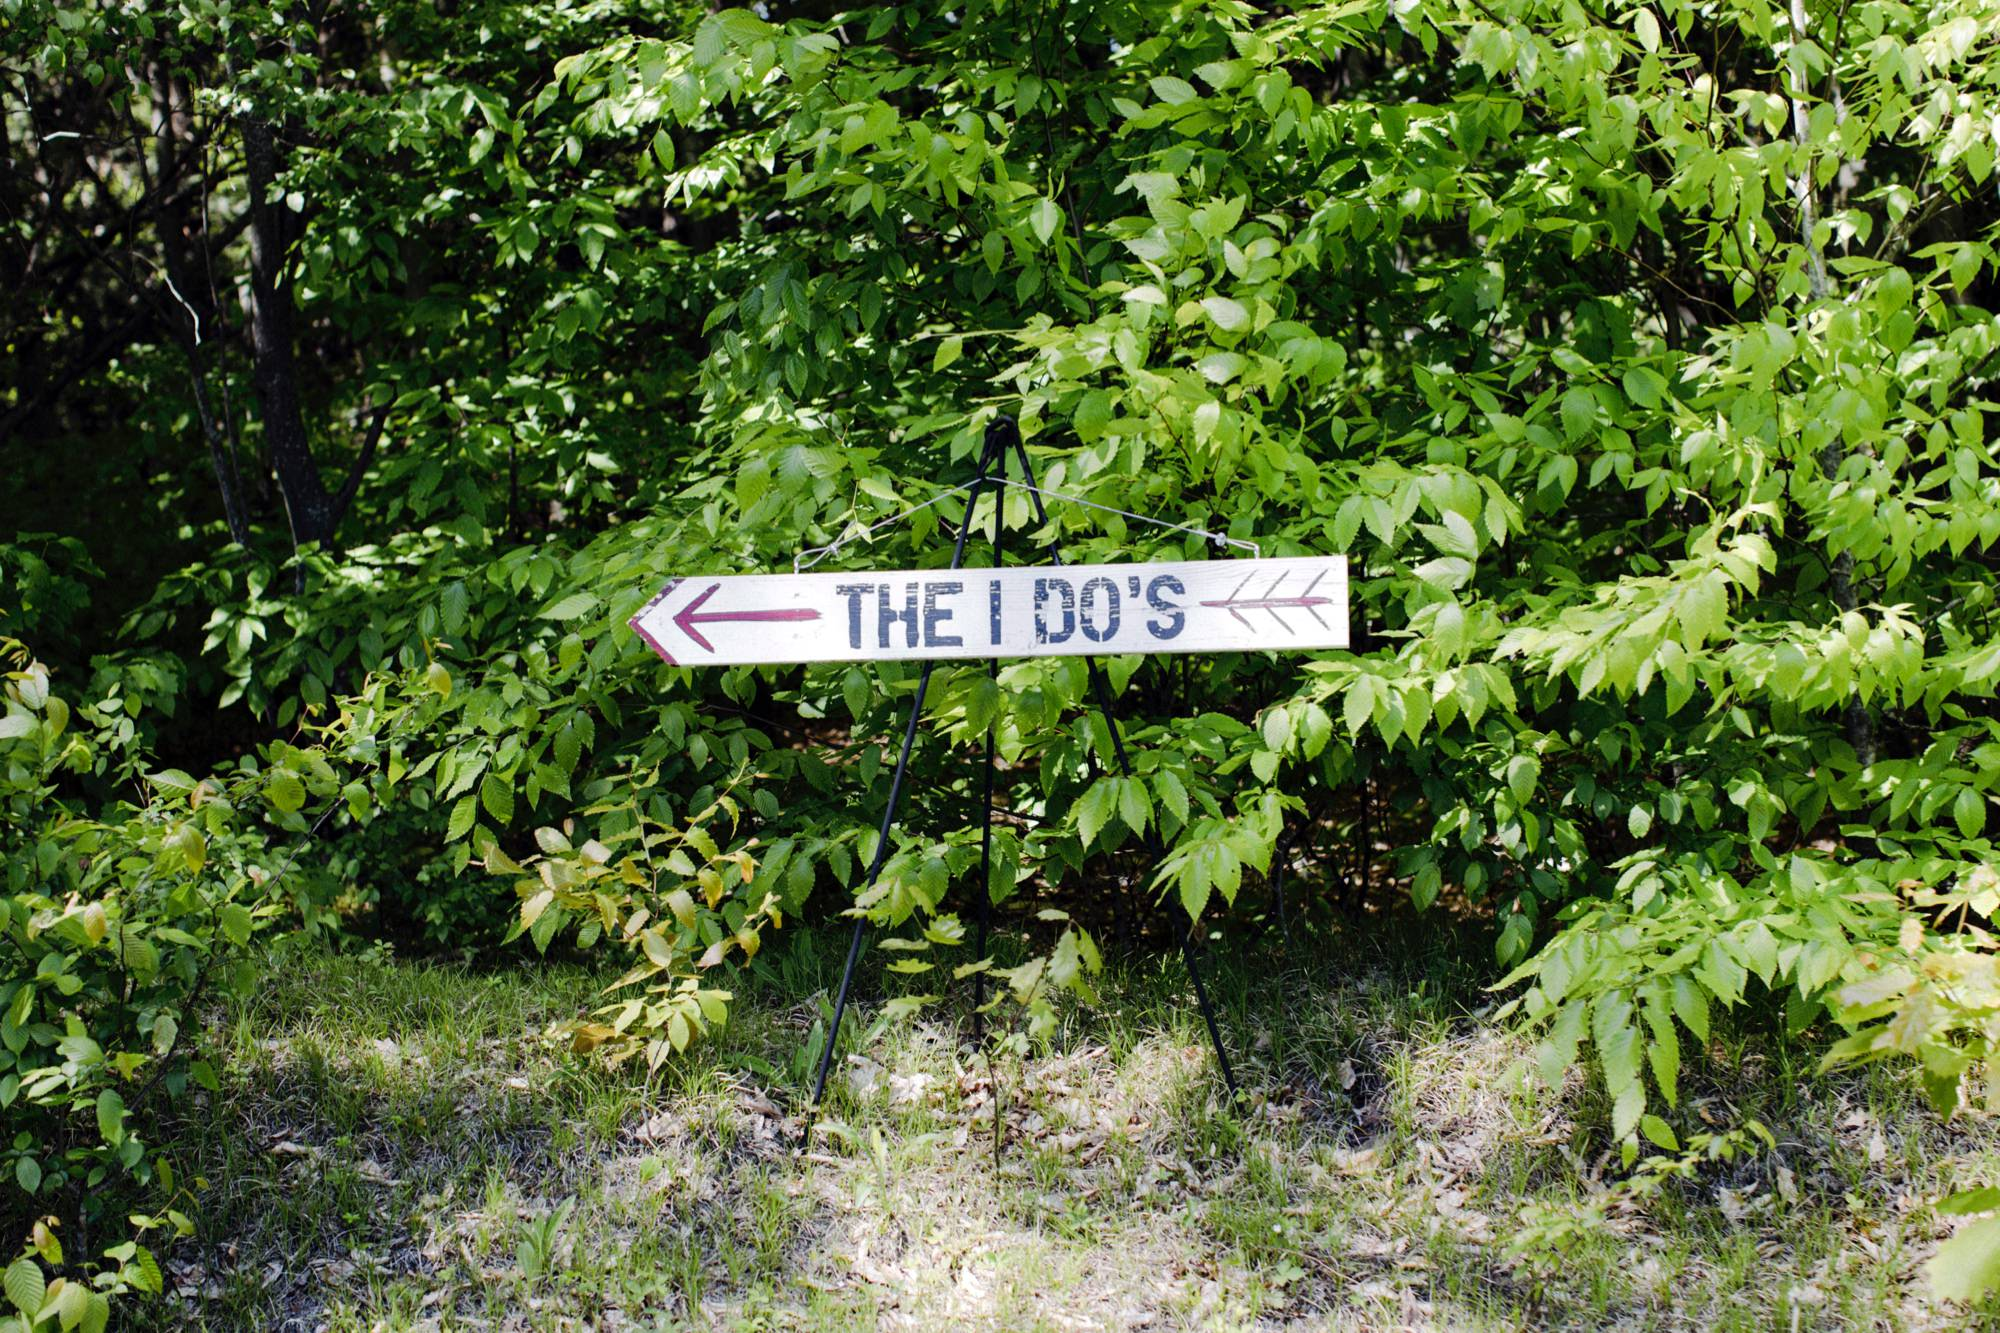 The I Do's Sign at Roxbury Barn Estate in the Catskills New York